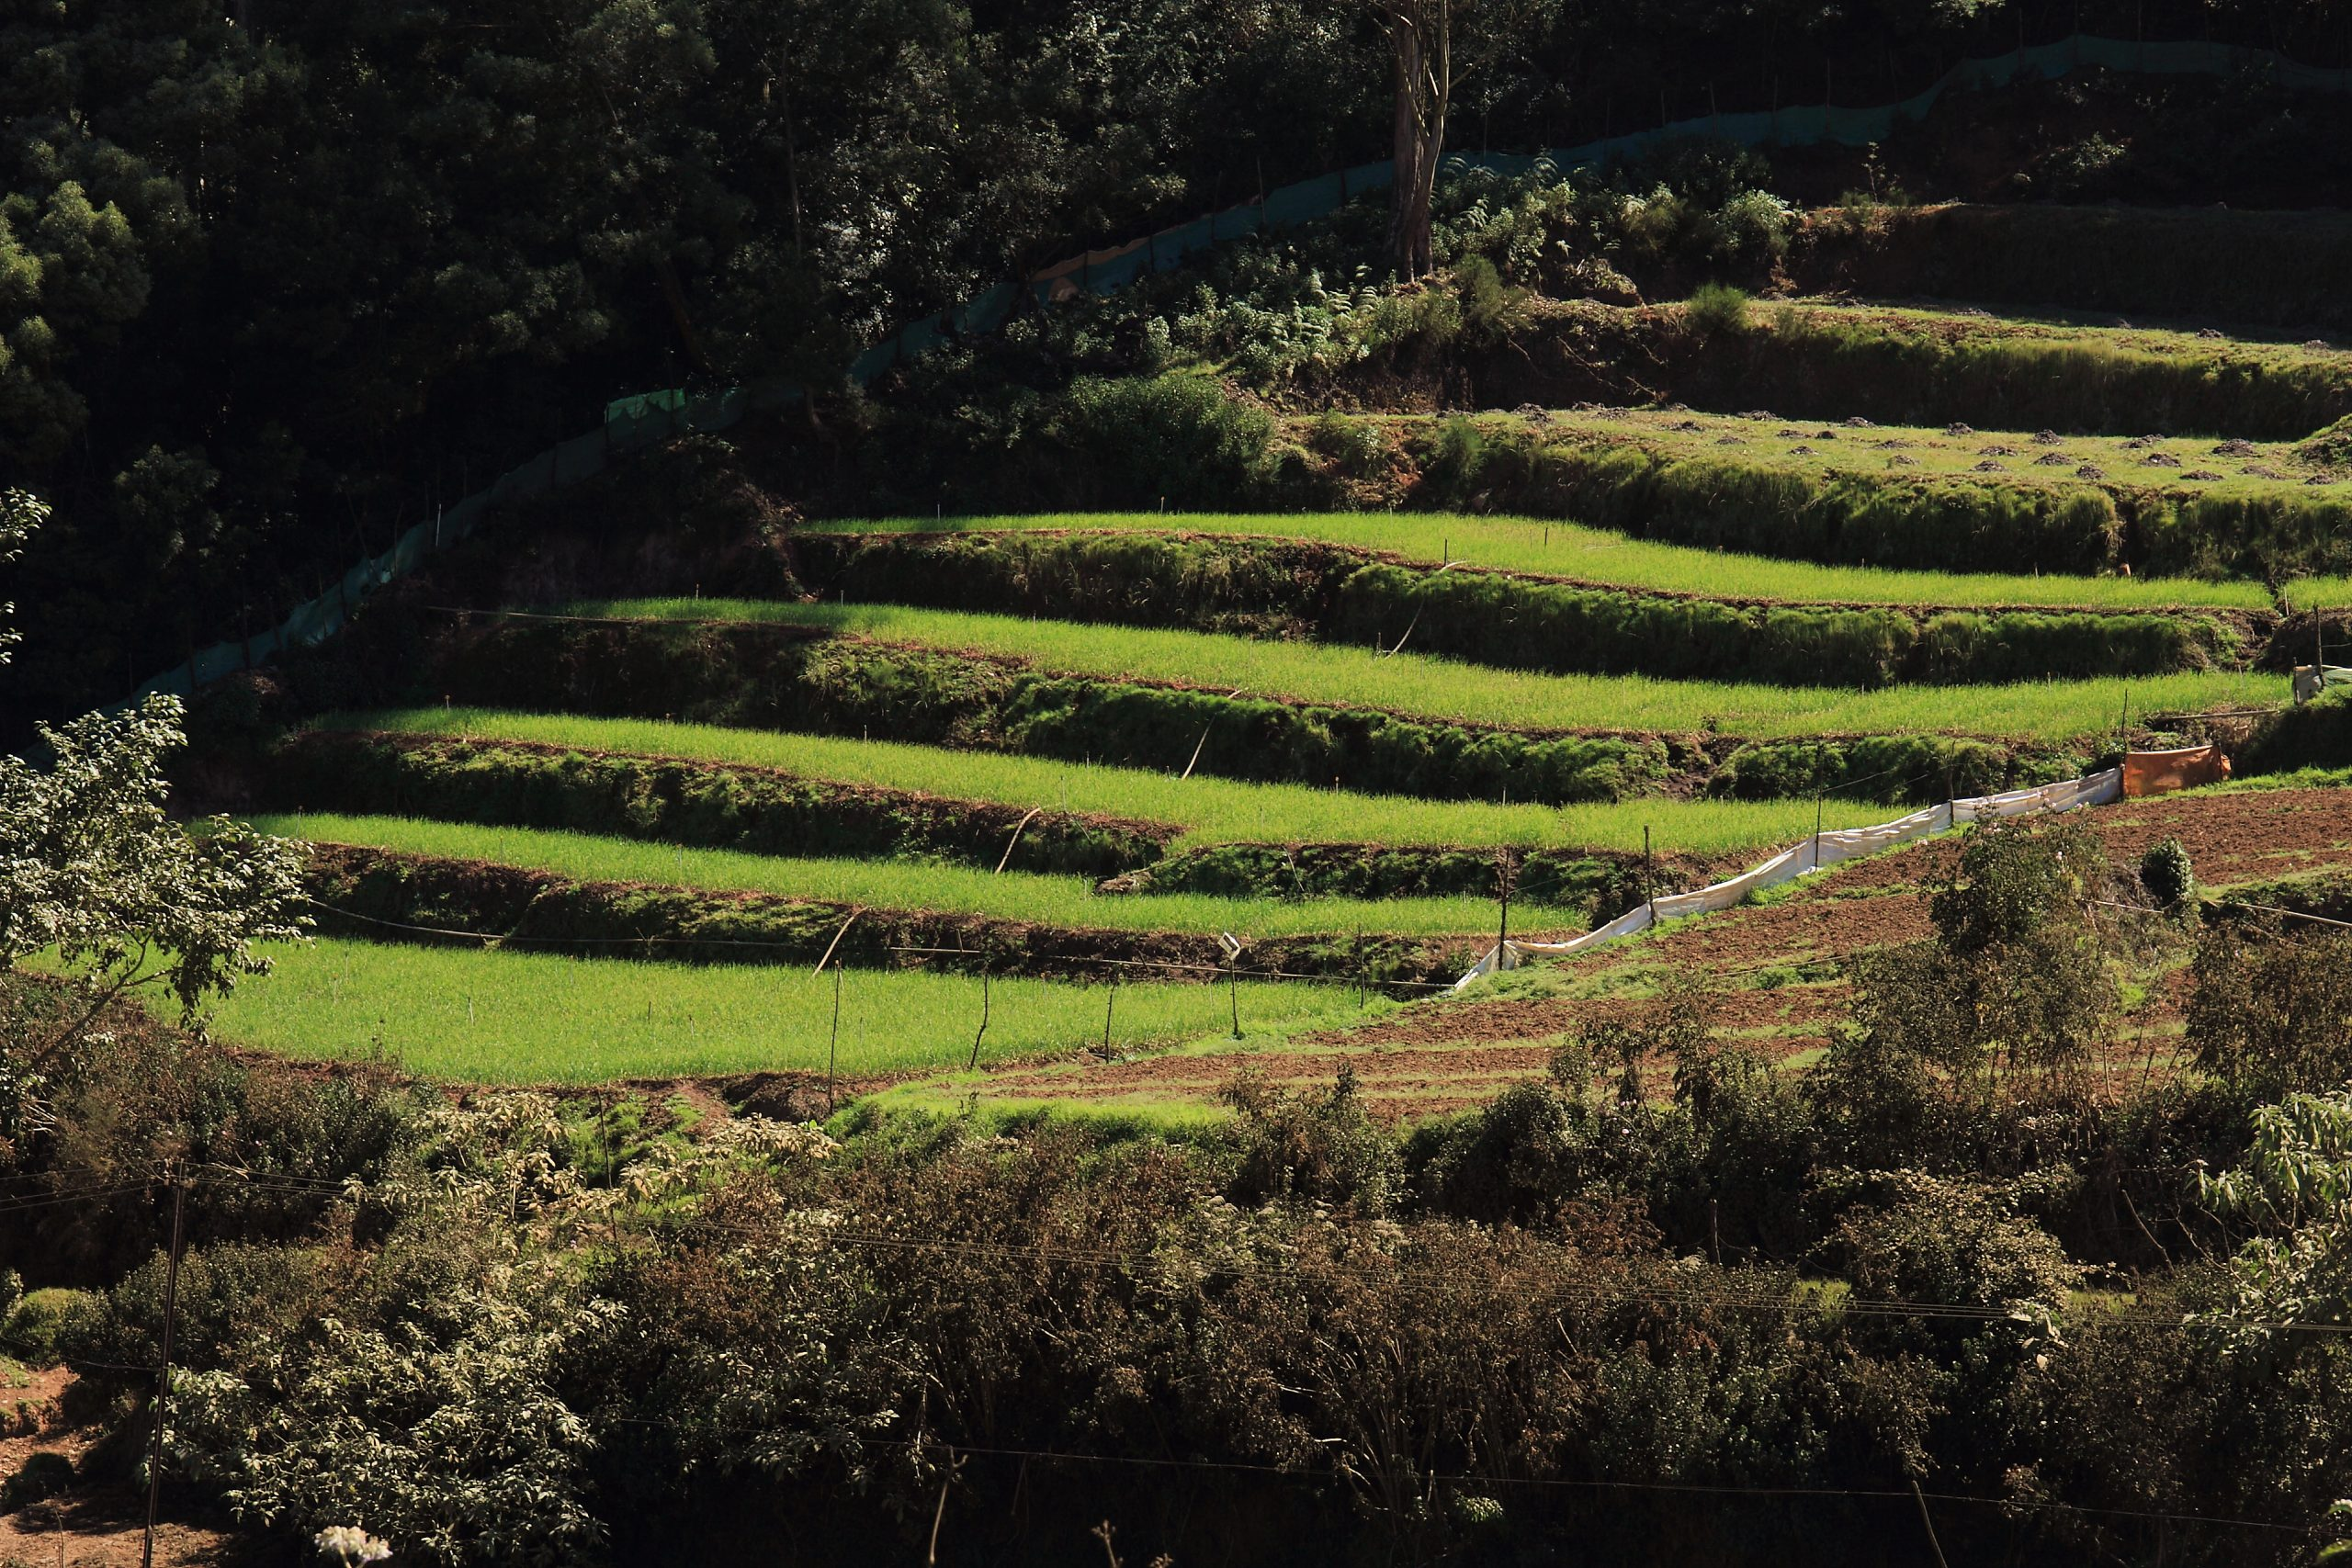 Terrace farming on Hills in Ooty, India